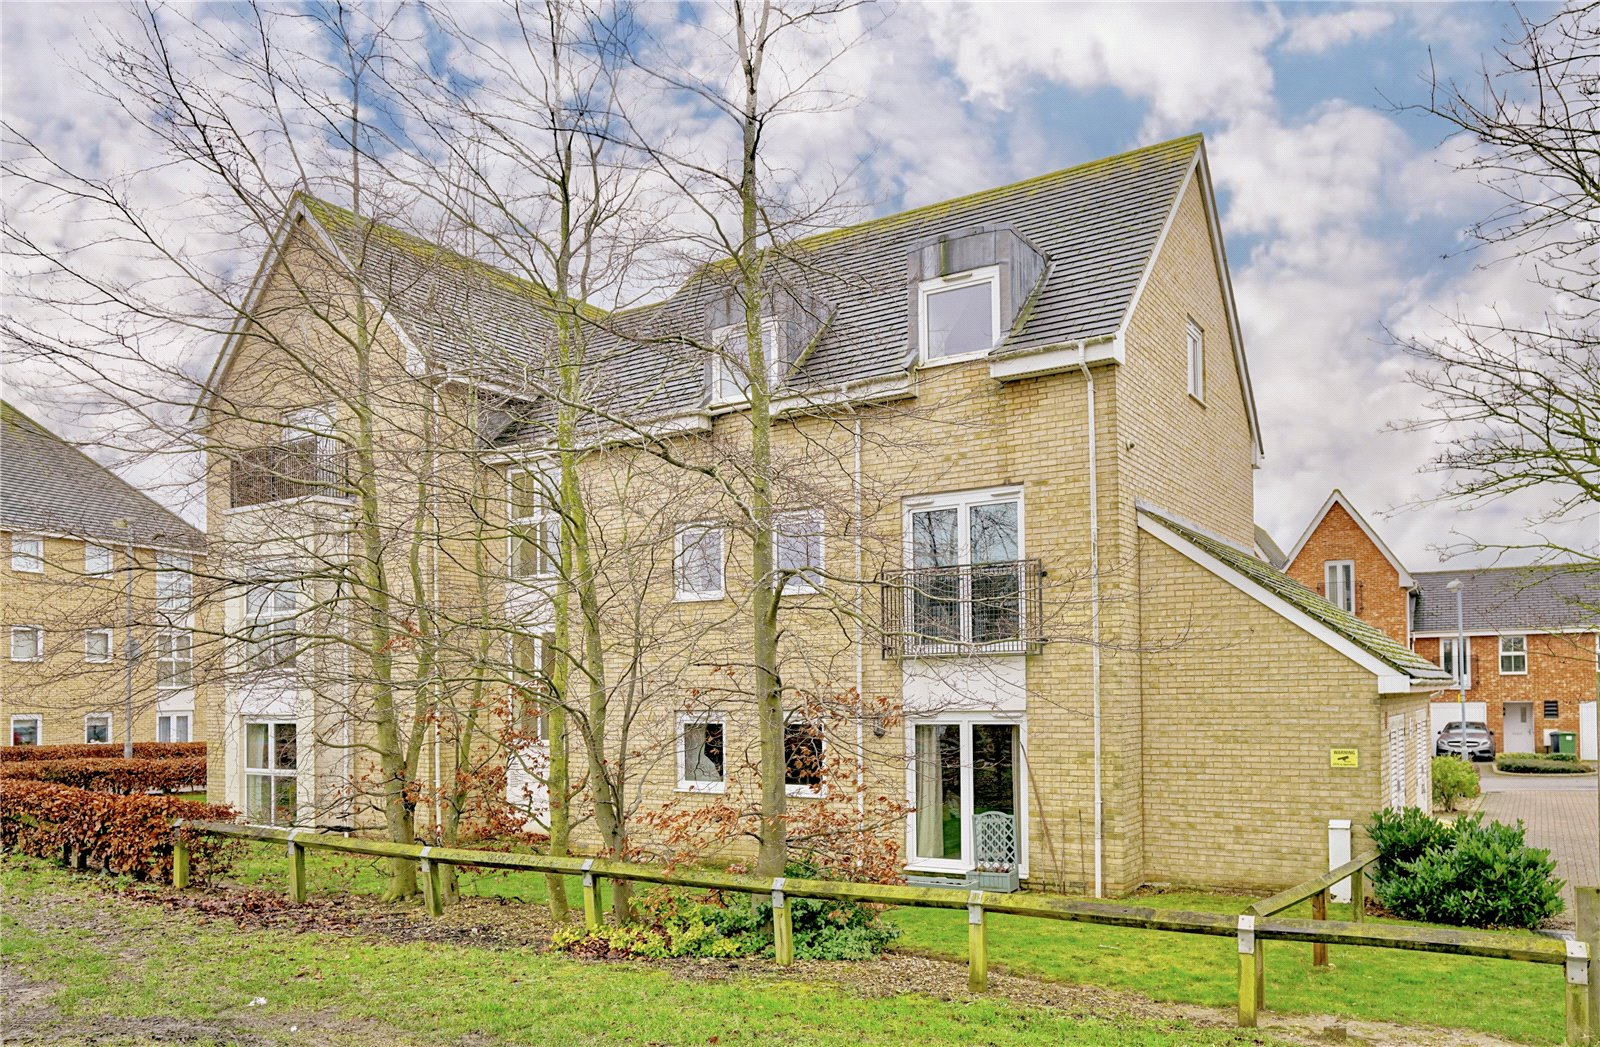 2 bed apartment for sale in Linton Close, Eaton Socon  - Property Image 1